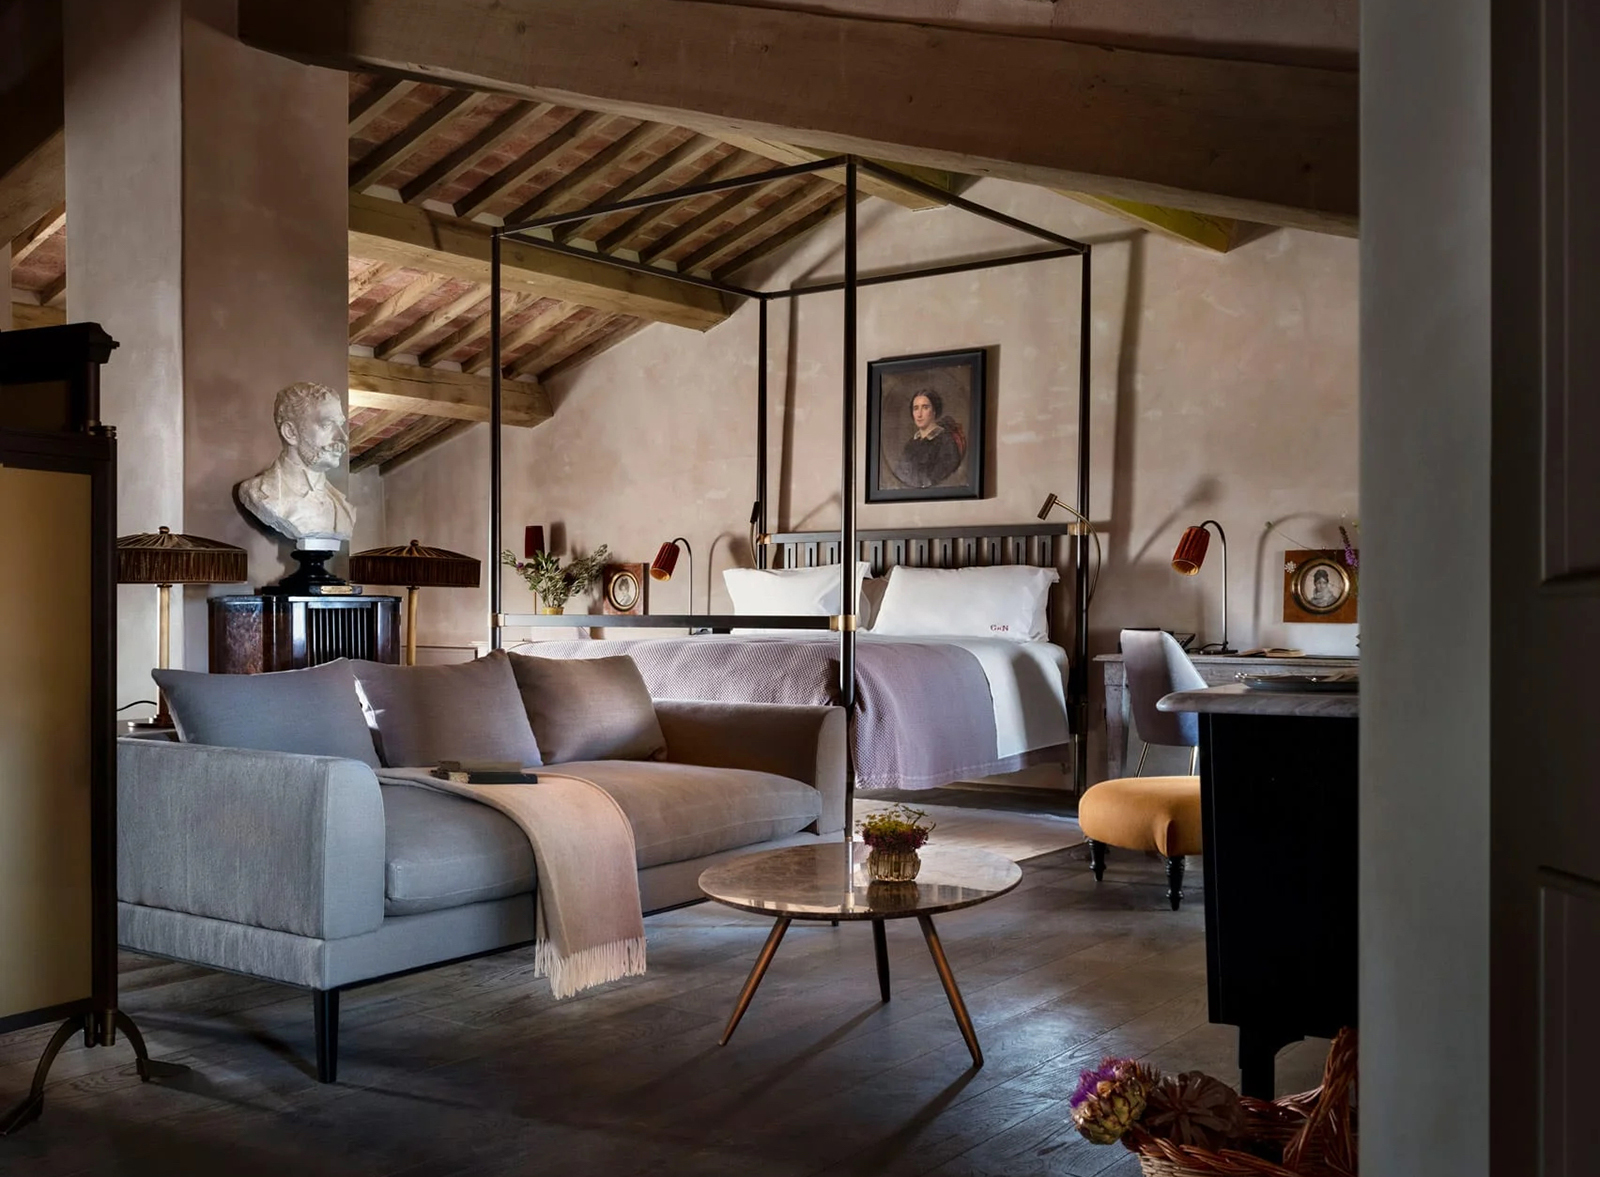 Modern furniture and fabrics sit beneath historic rafters